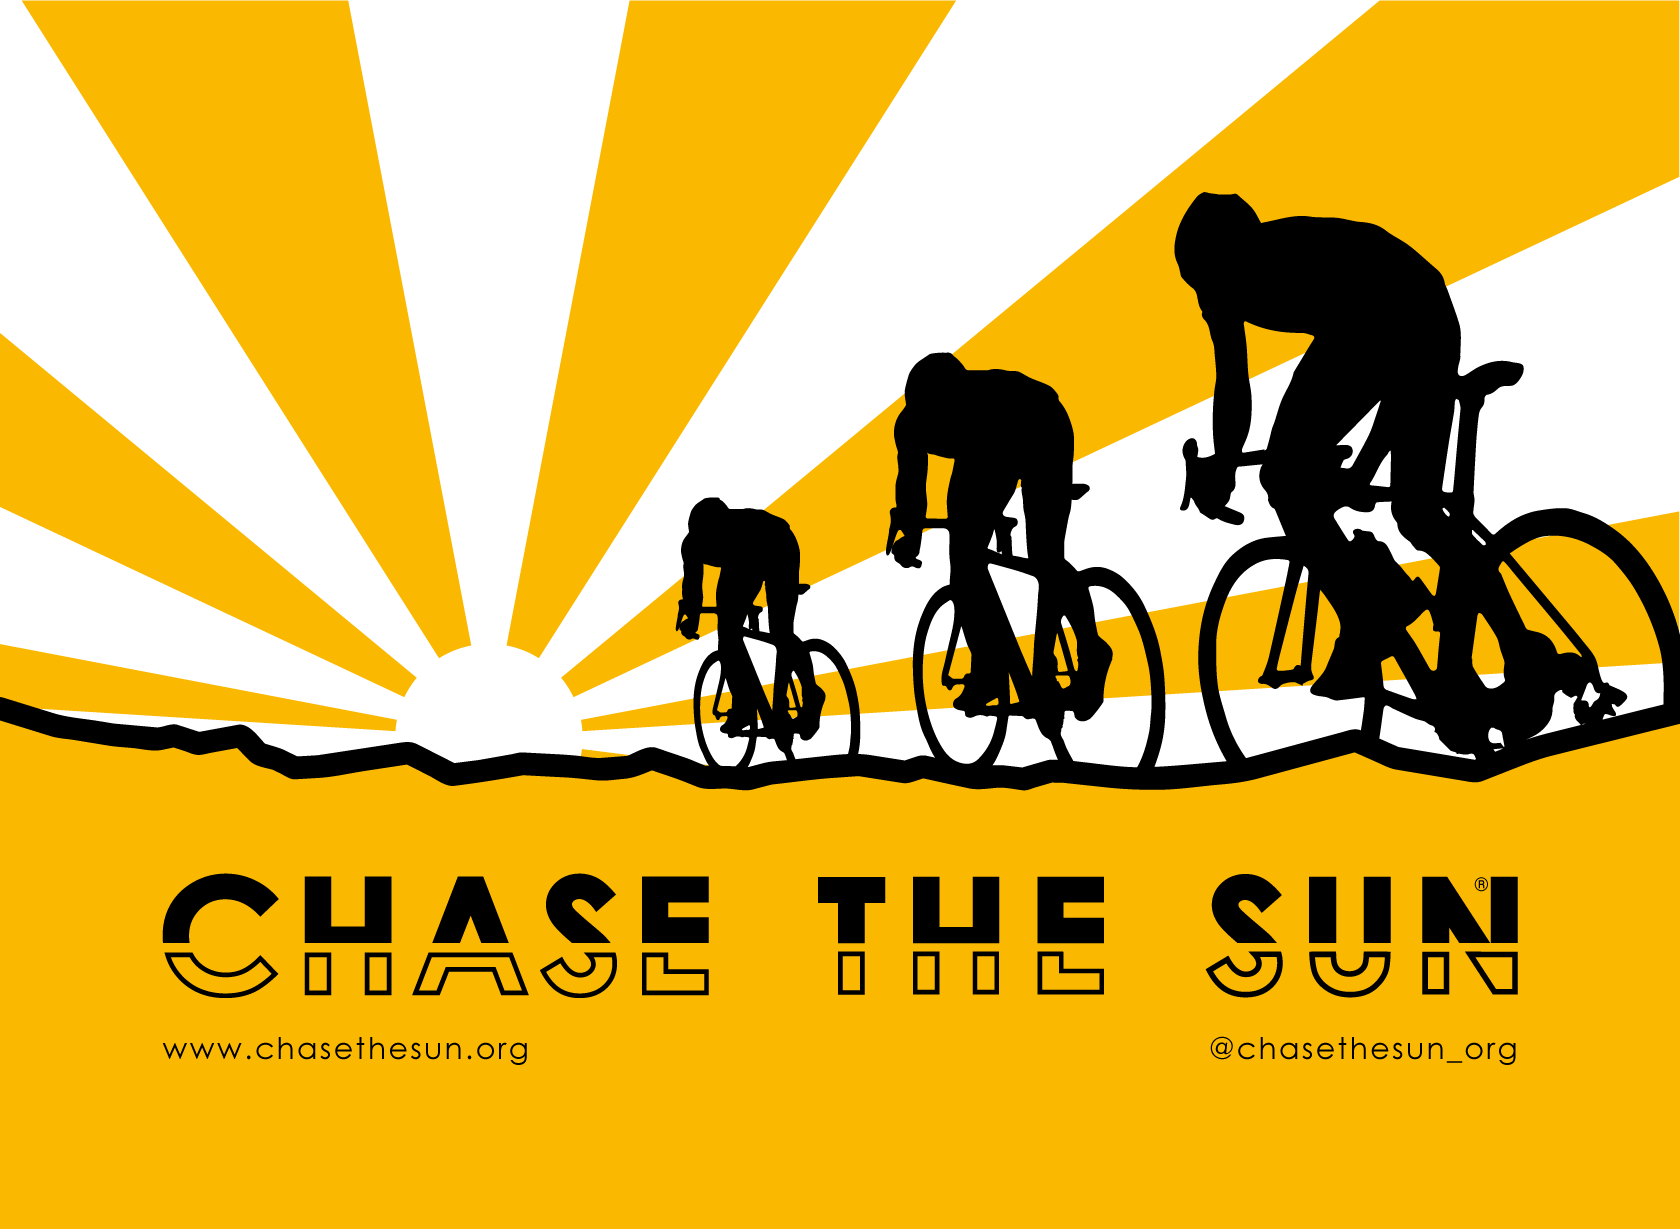 Chase The Sun - Cycle 205 Miles in a Day f51397340